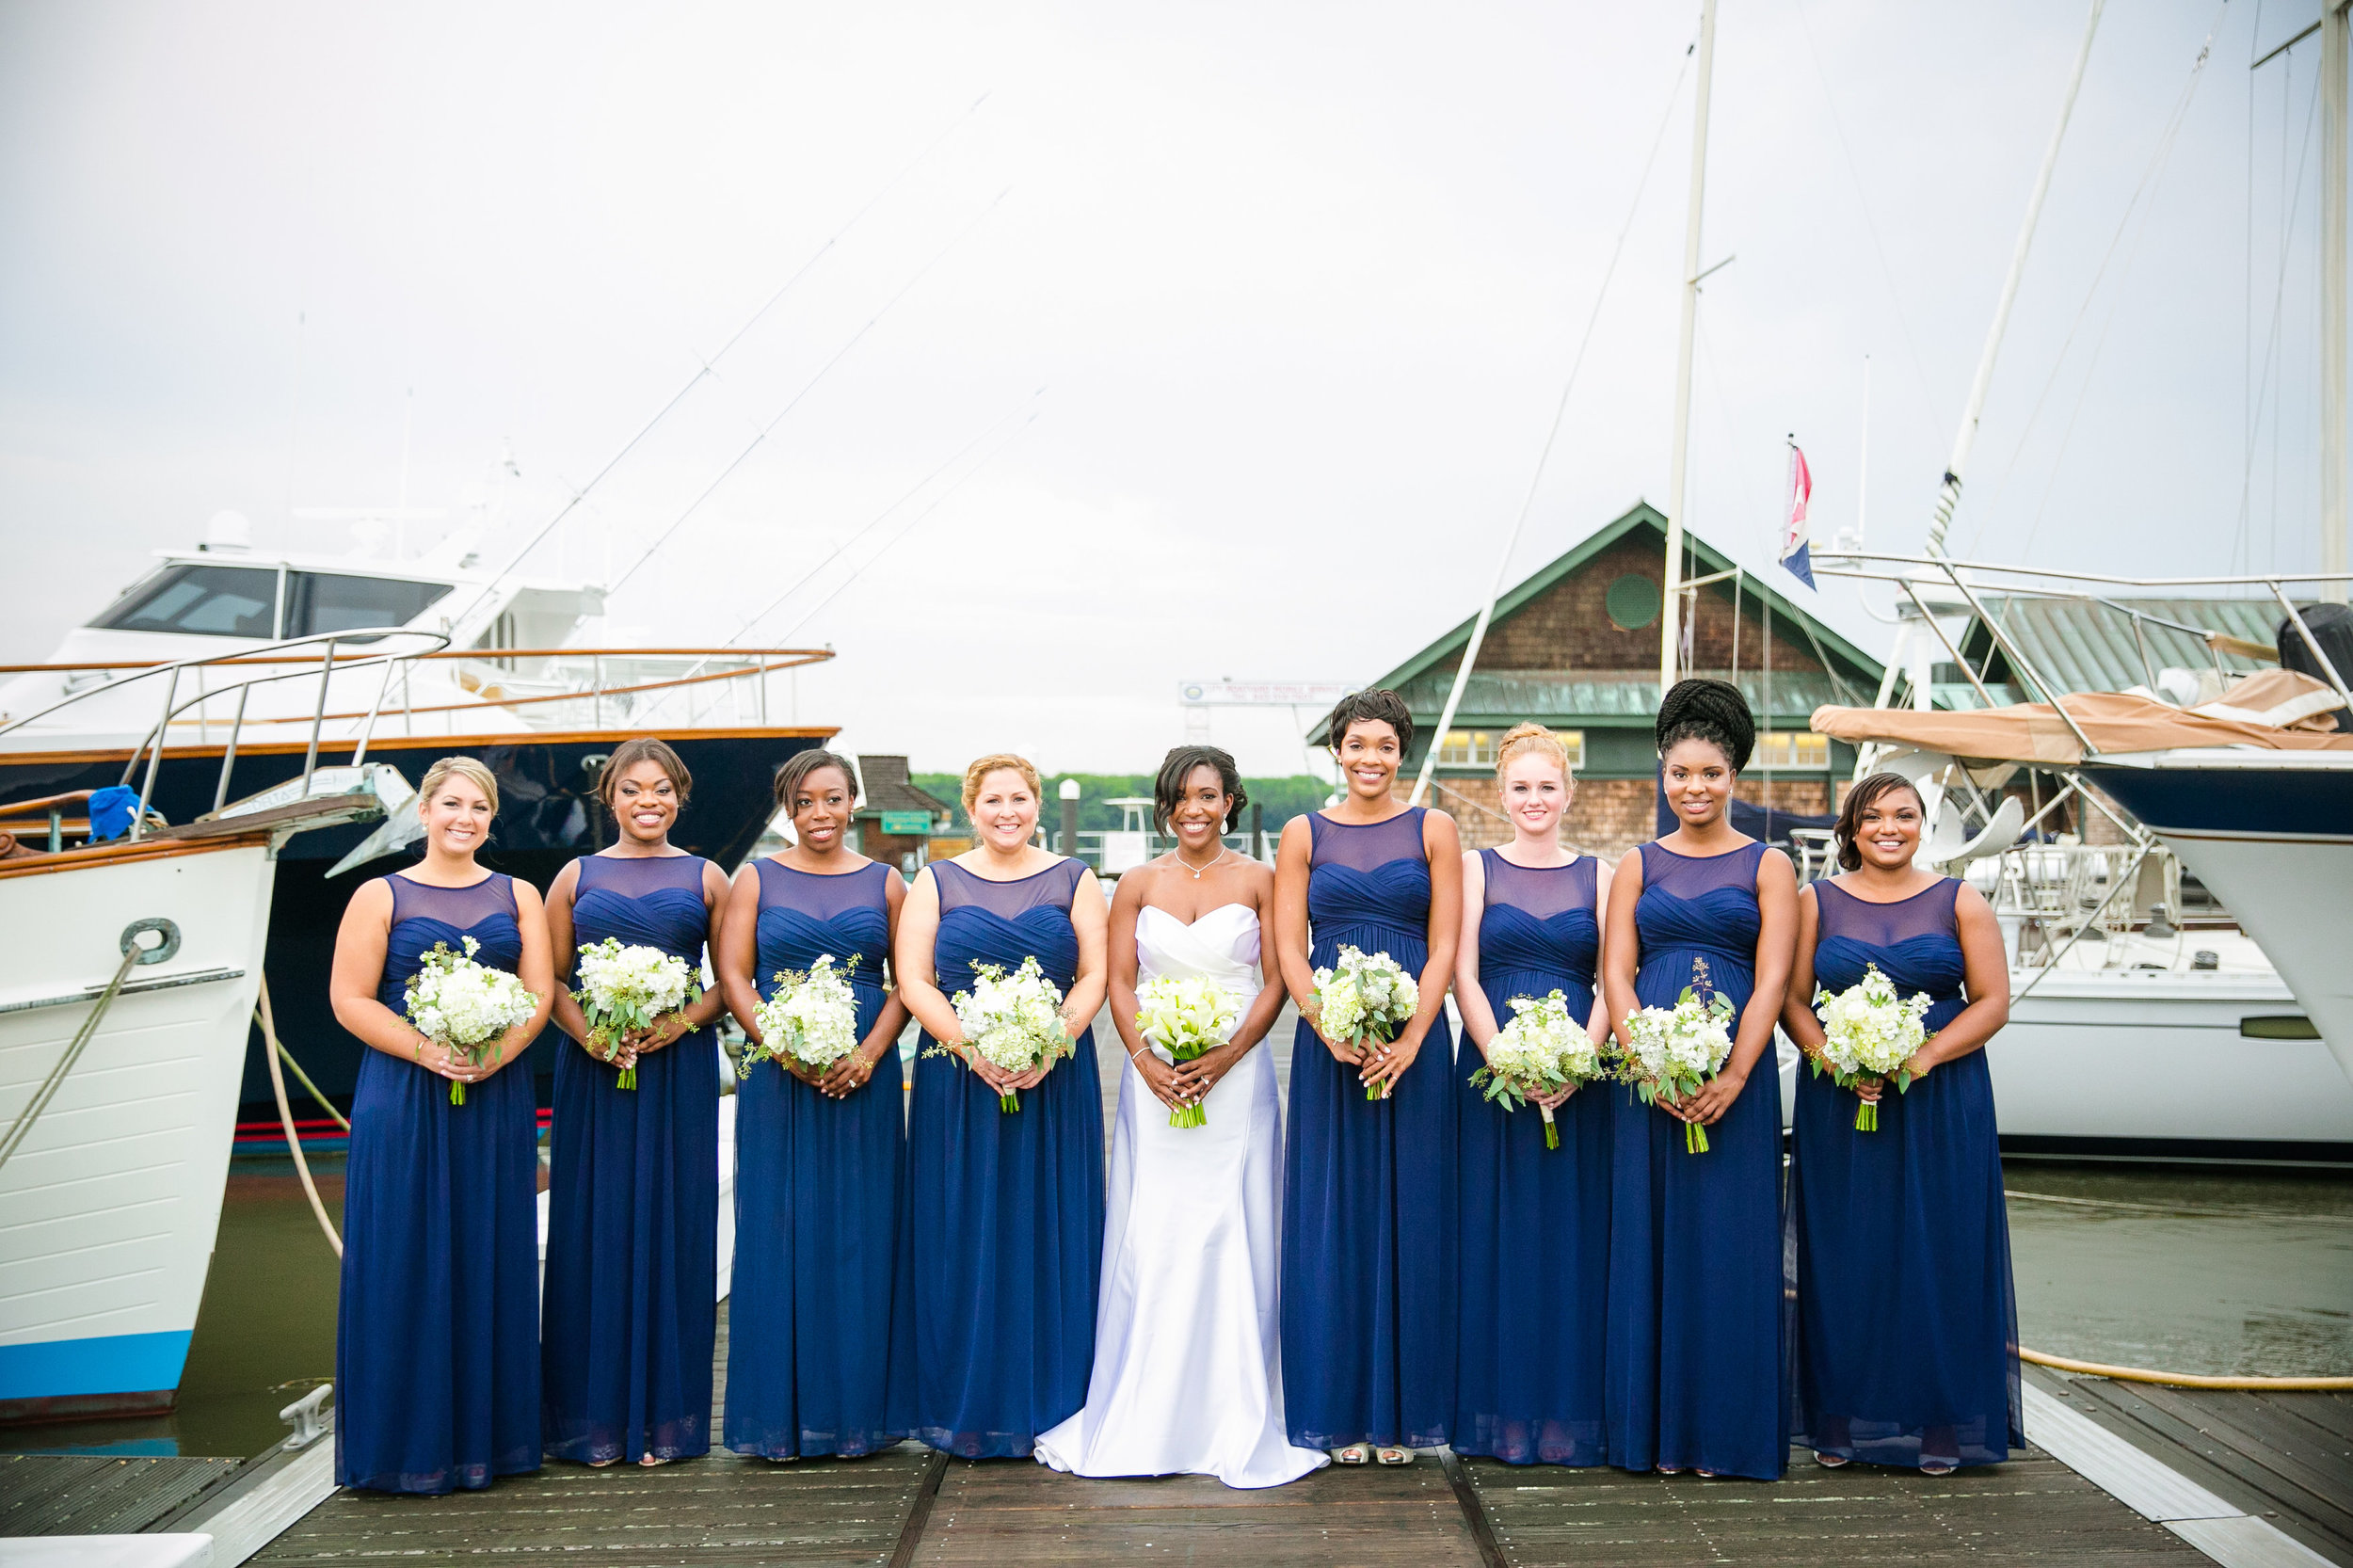 royal-blue-bridesmaid-dress-nautical-wedding-portrait